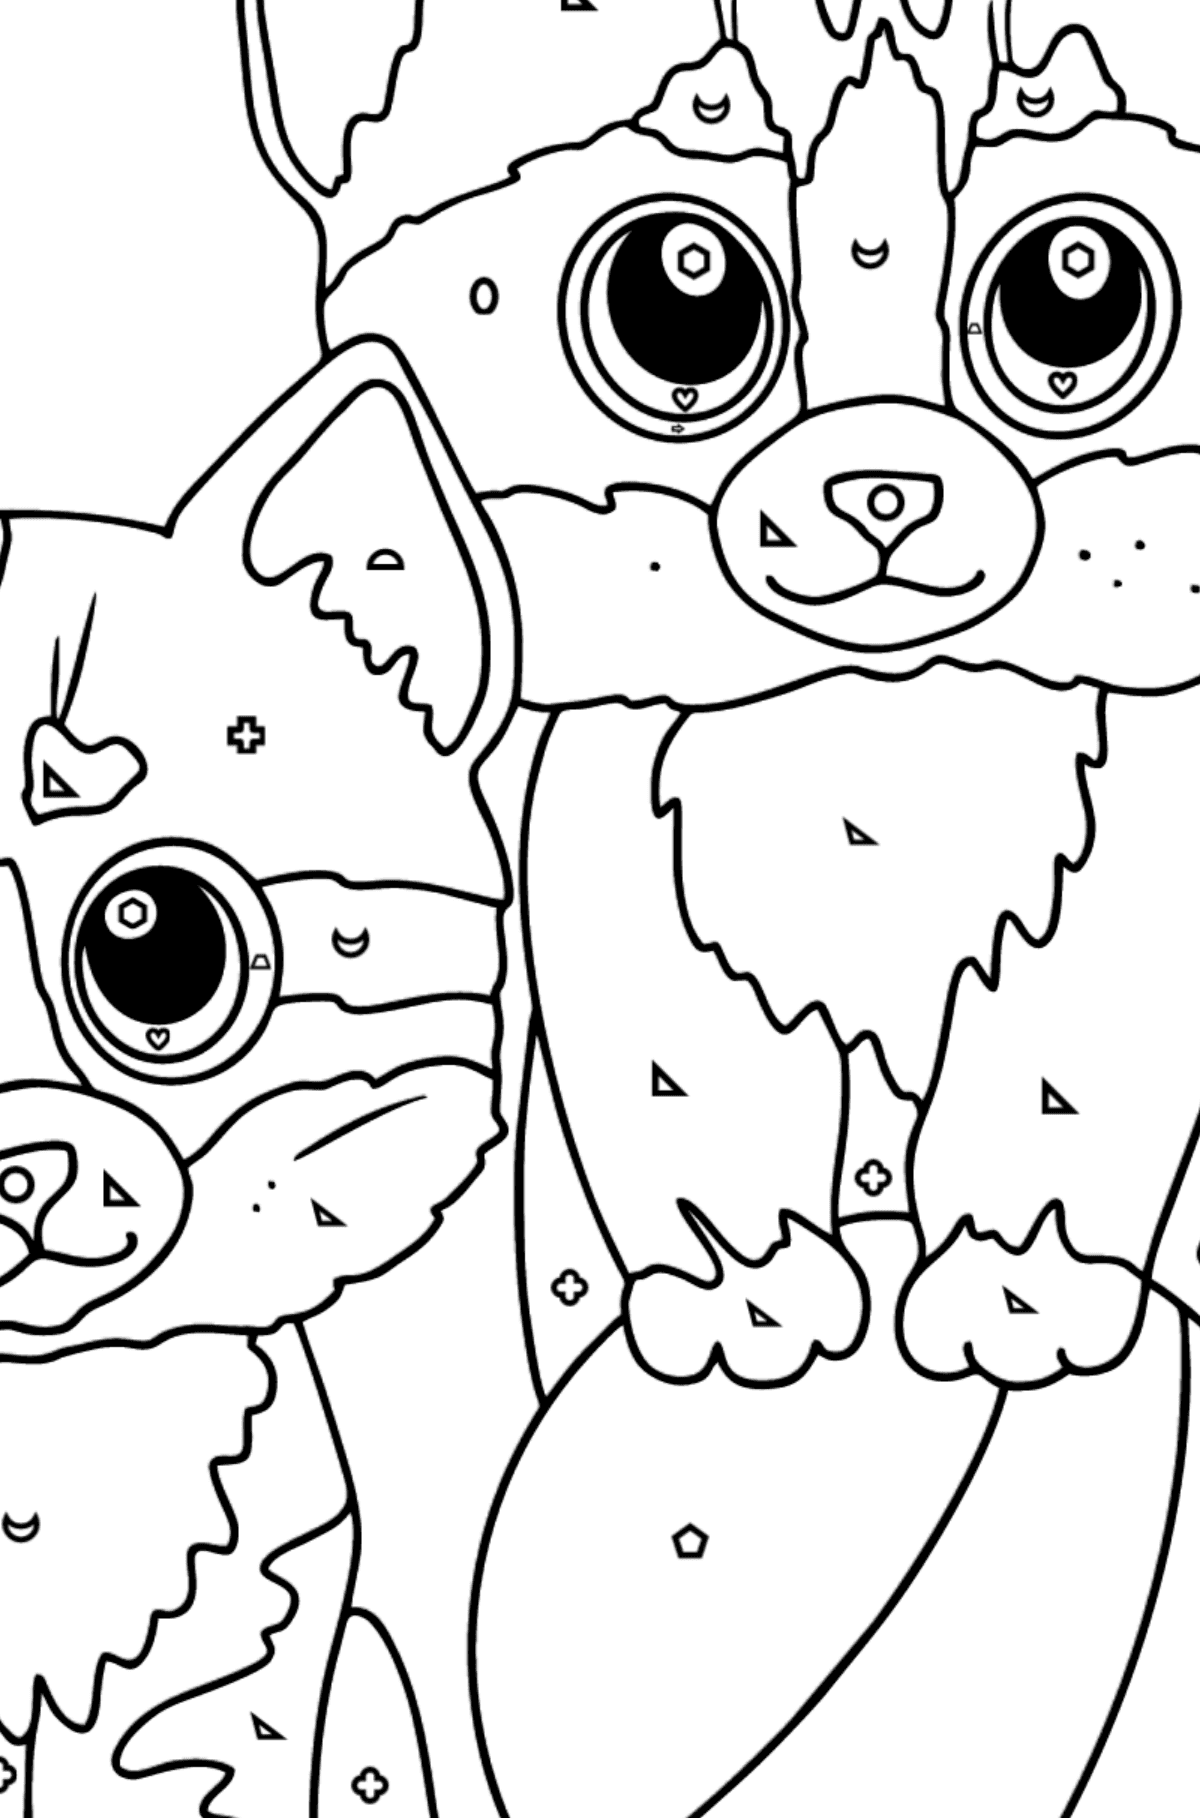 Coloring Page - Two Kittens with a Ball - Coloring by Geometric Shapes for Kids